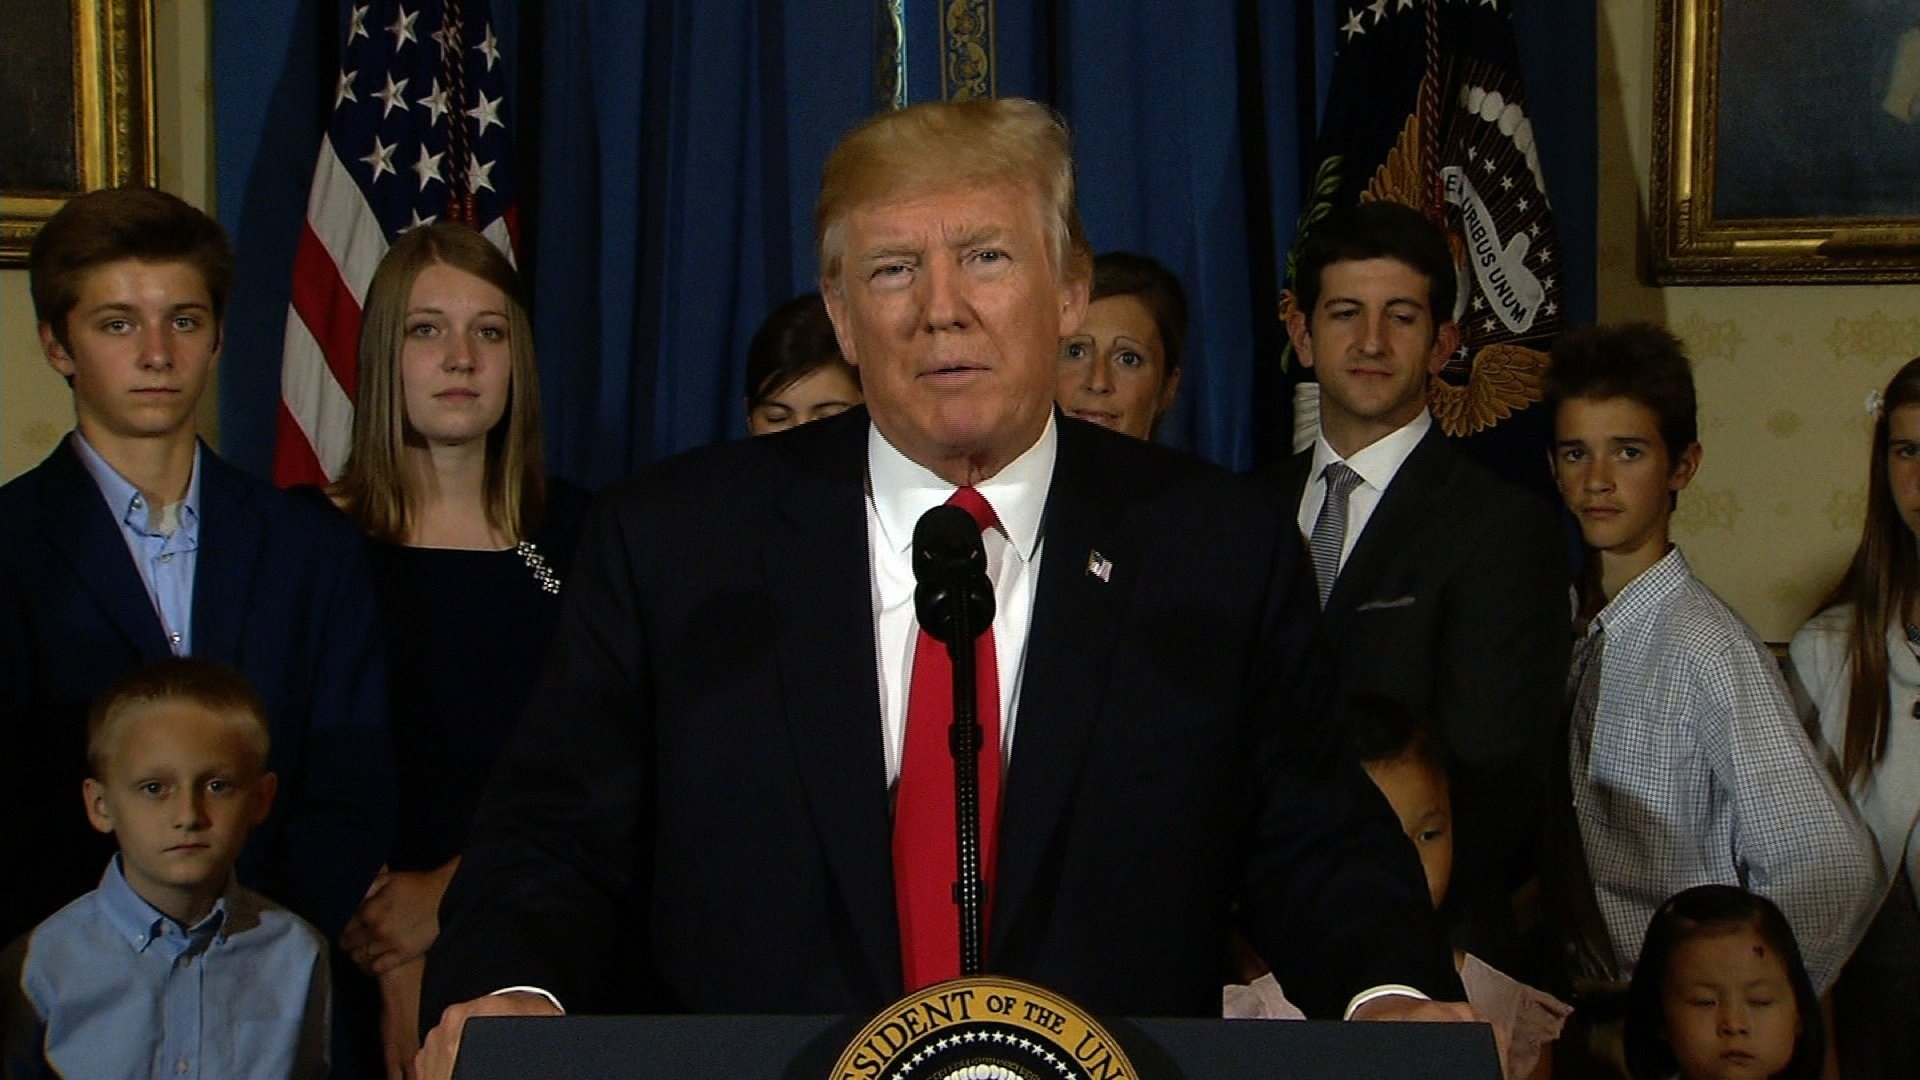 President Trump speaks about repealing and replacing Obamacare on July 24, 2017.